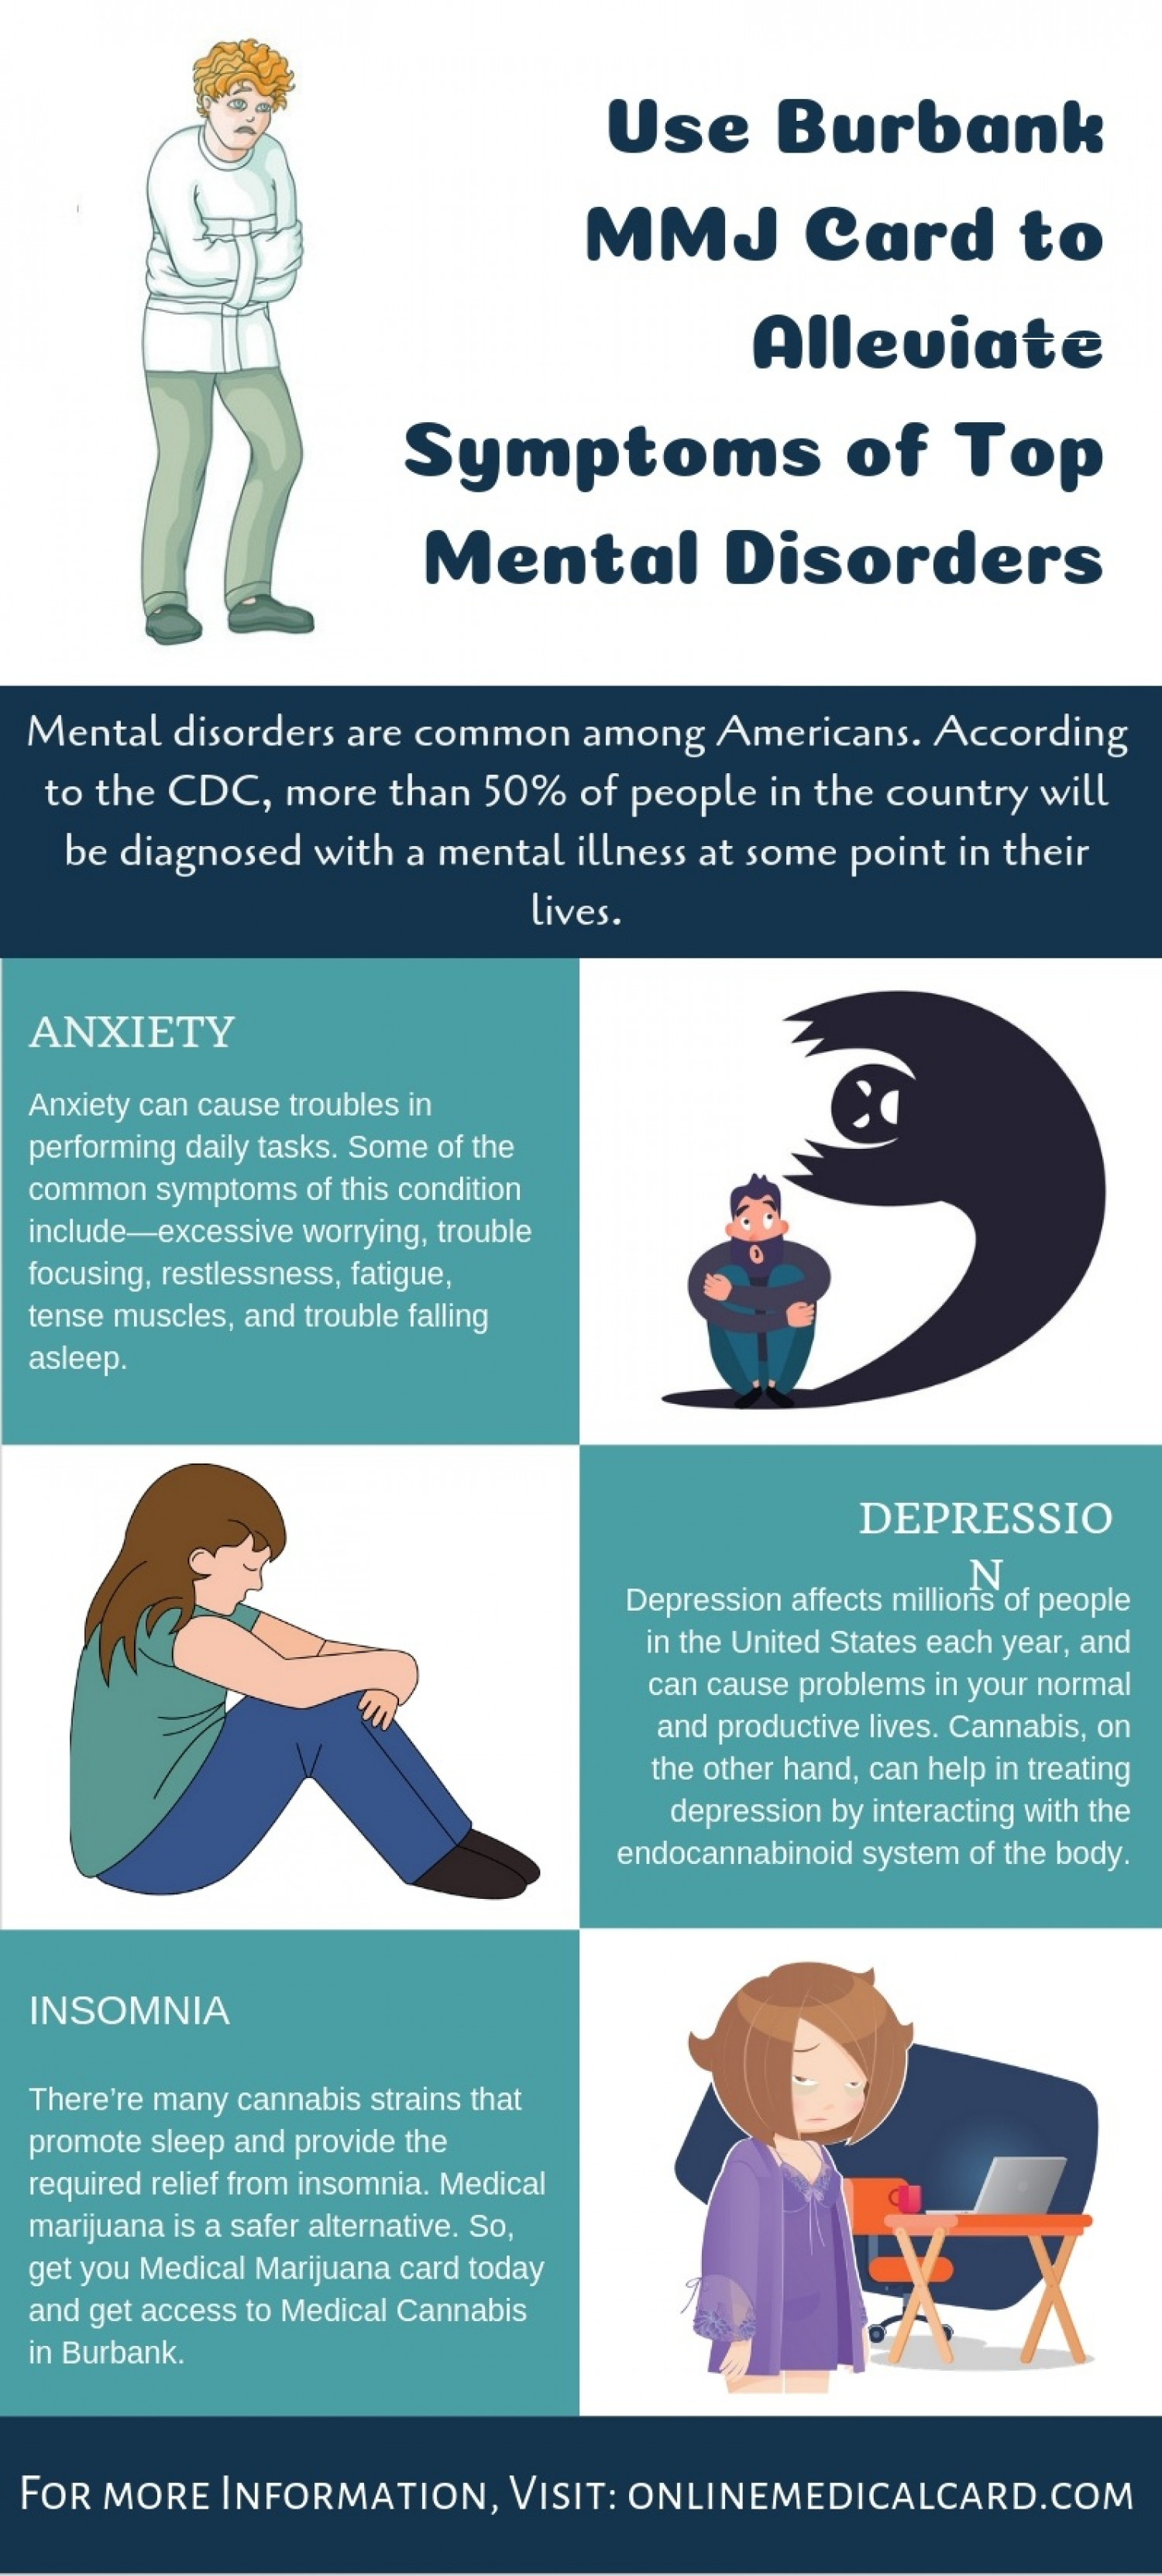 Use Burbank MMJ Card to Alleviate Symptoms of Top Mental Disorders Infographic